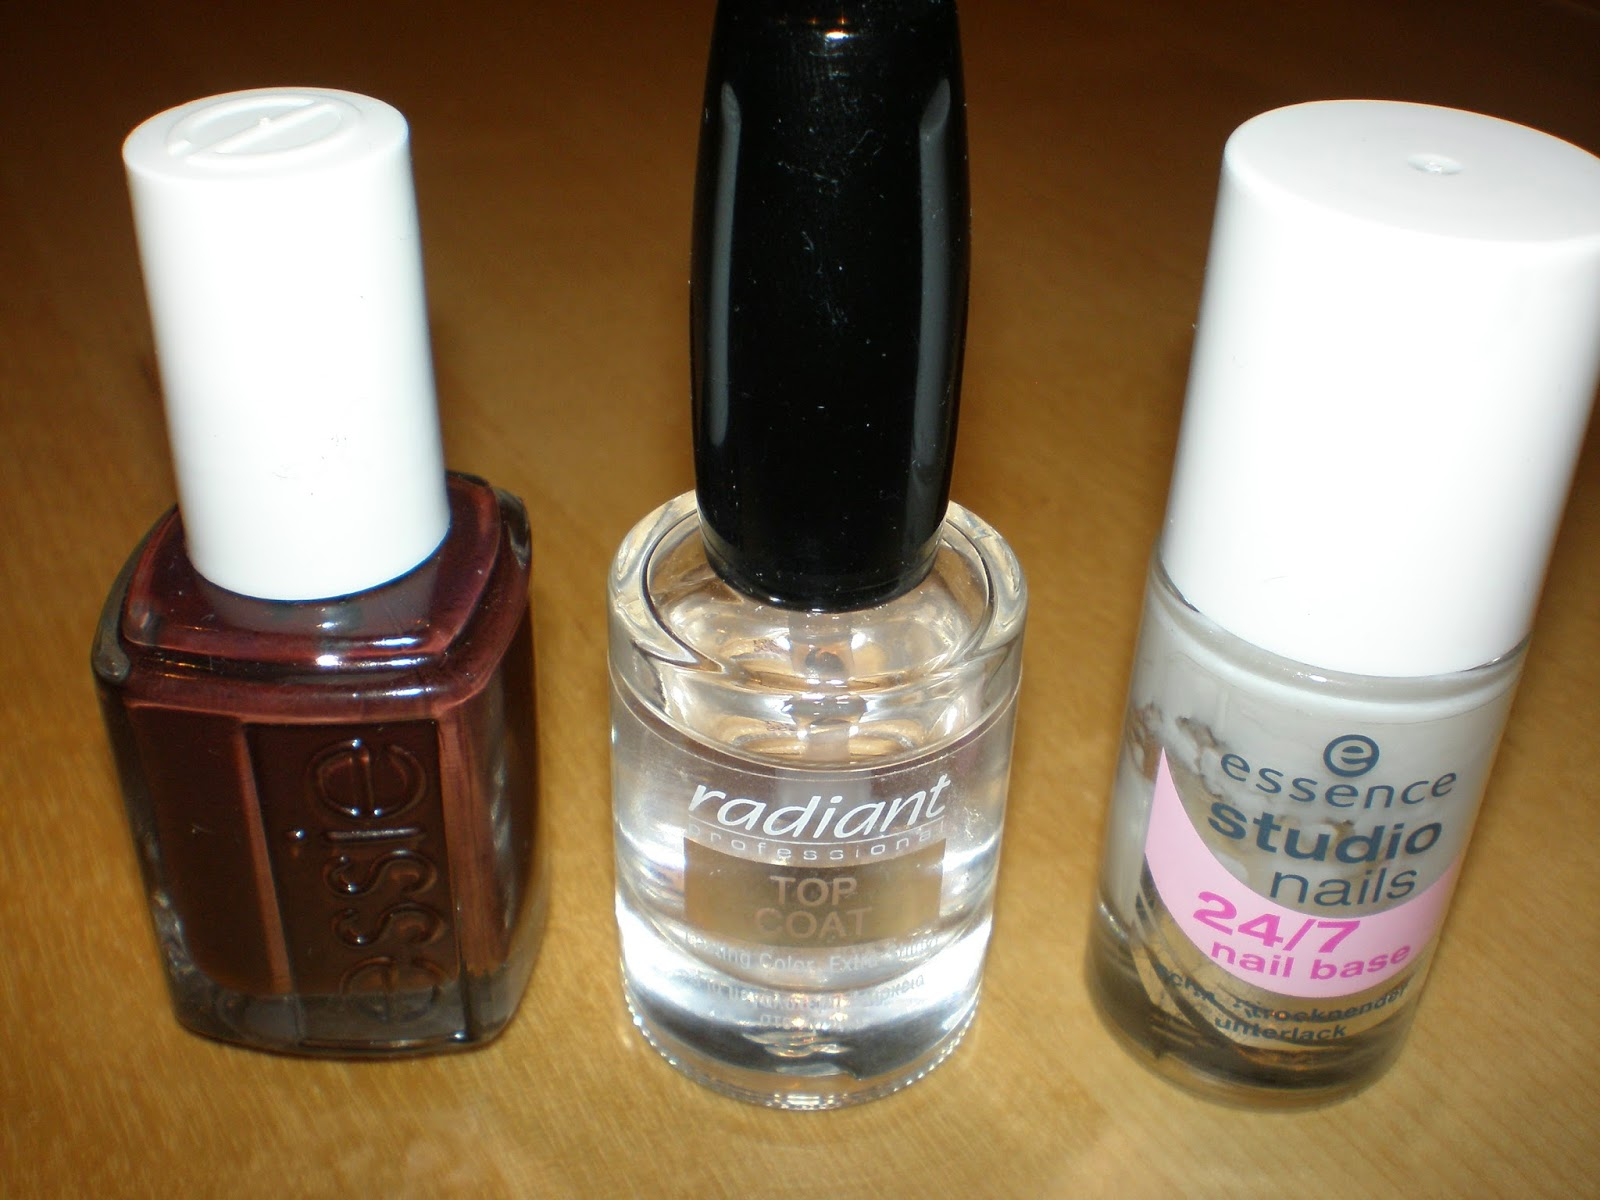 A DIY manicure at home with Essence nail base, Radiant top coat and Essie nail polish in Lady Godiva